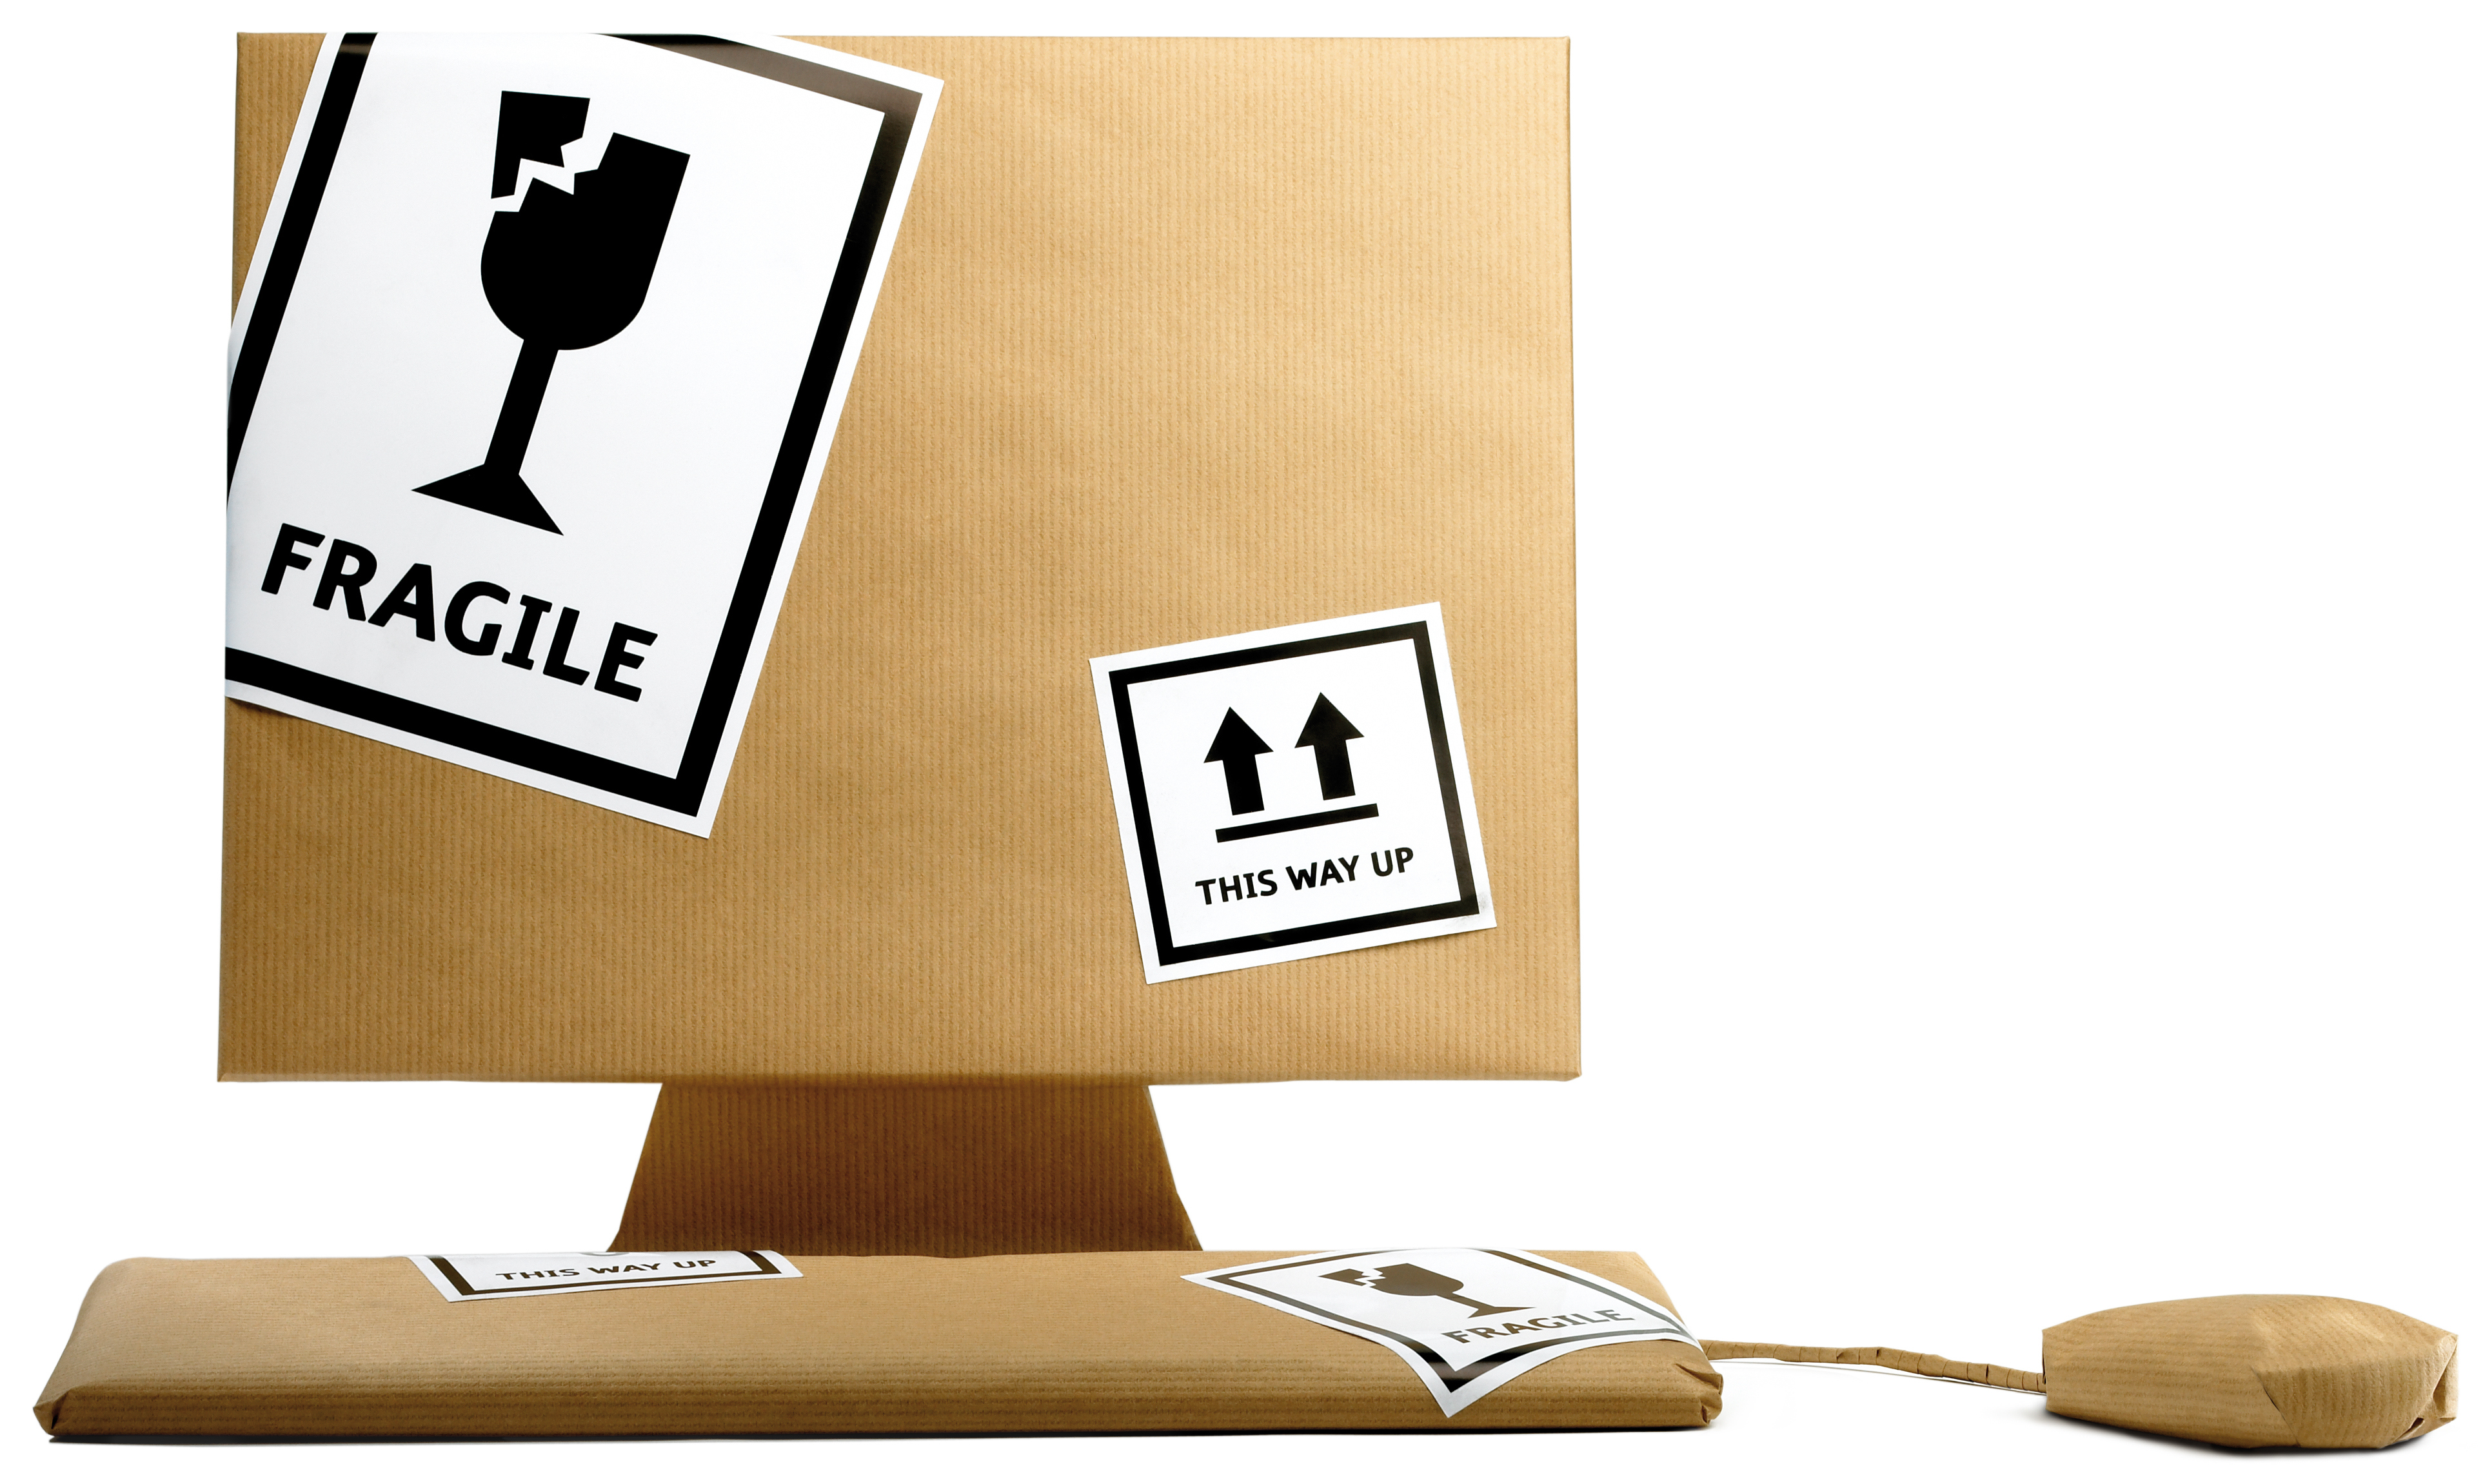 Image of computer, keyboard and mouse wrapped up in brown paper reading fragile